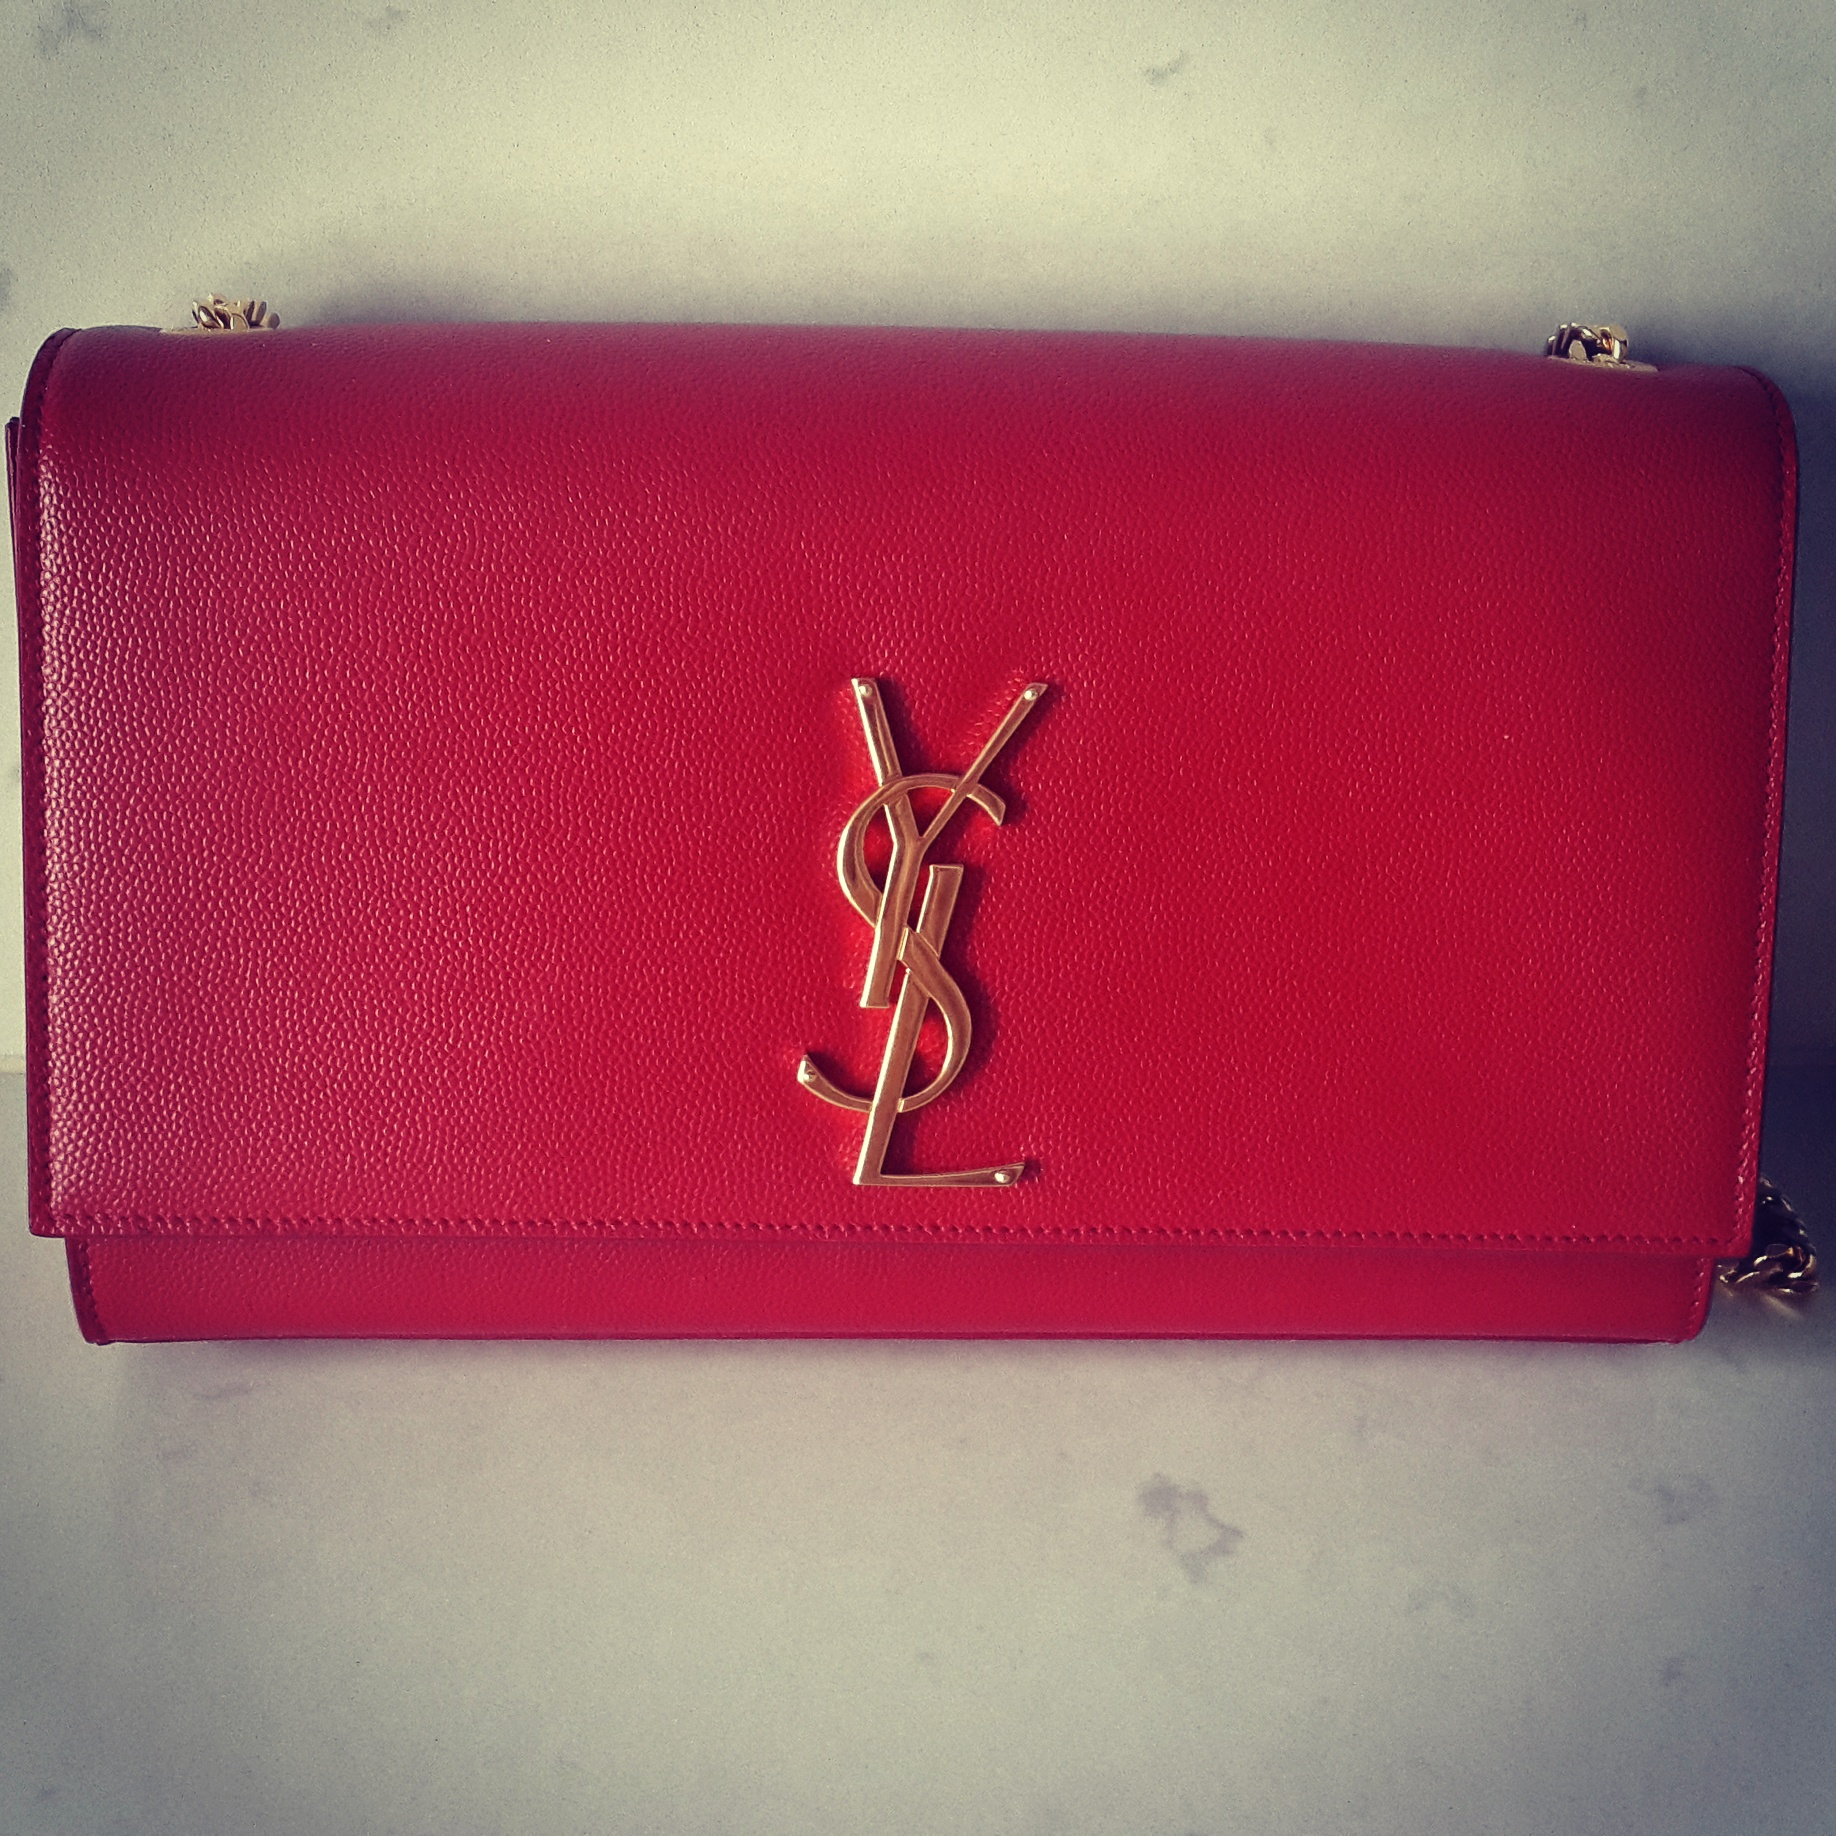 YSL Monogramme Medium Satchel Review | Cinderella has a blog